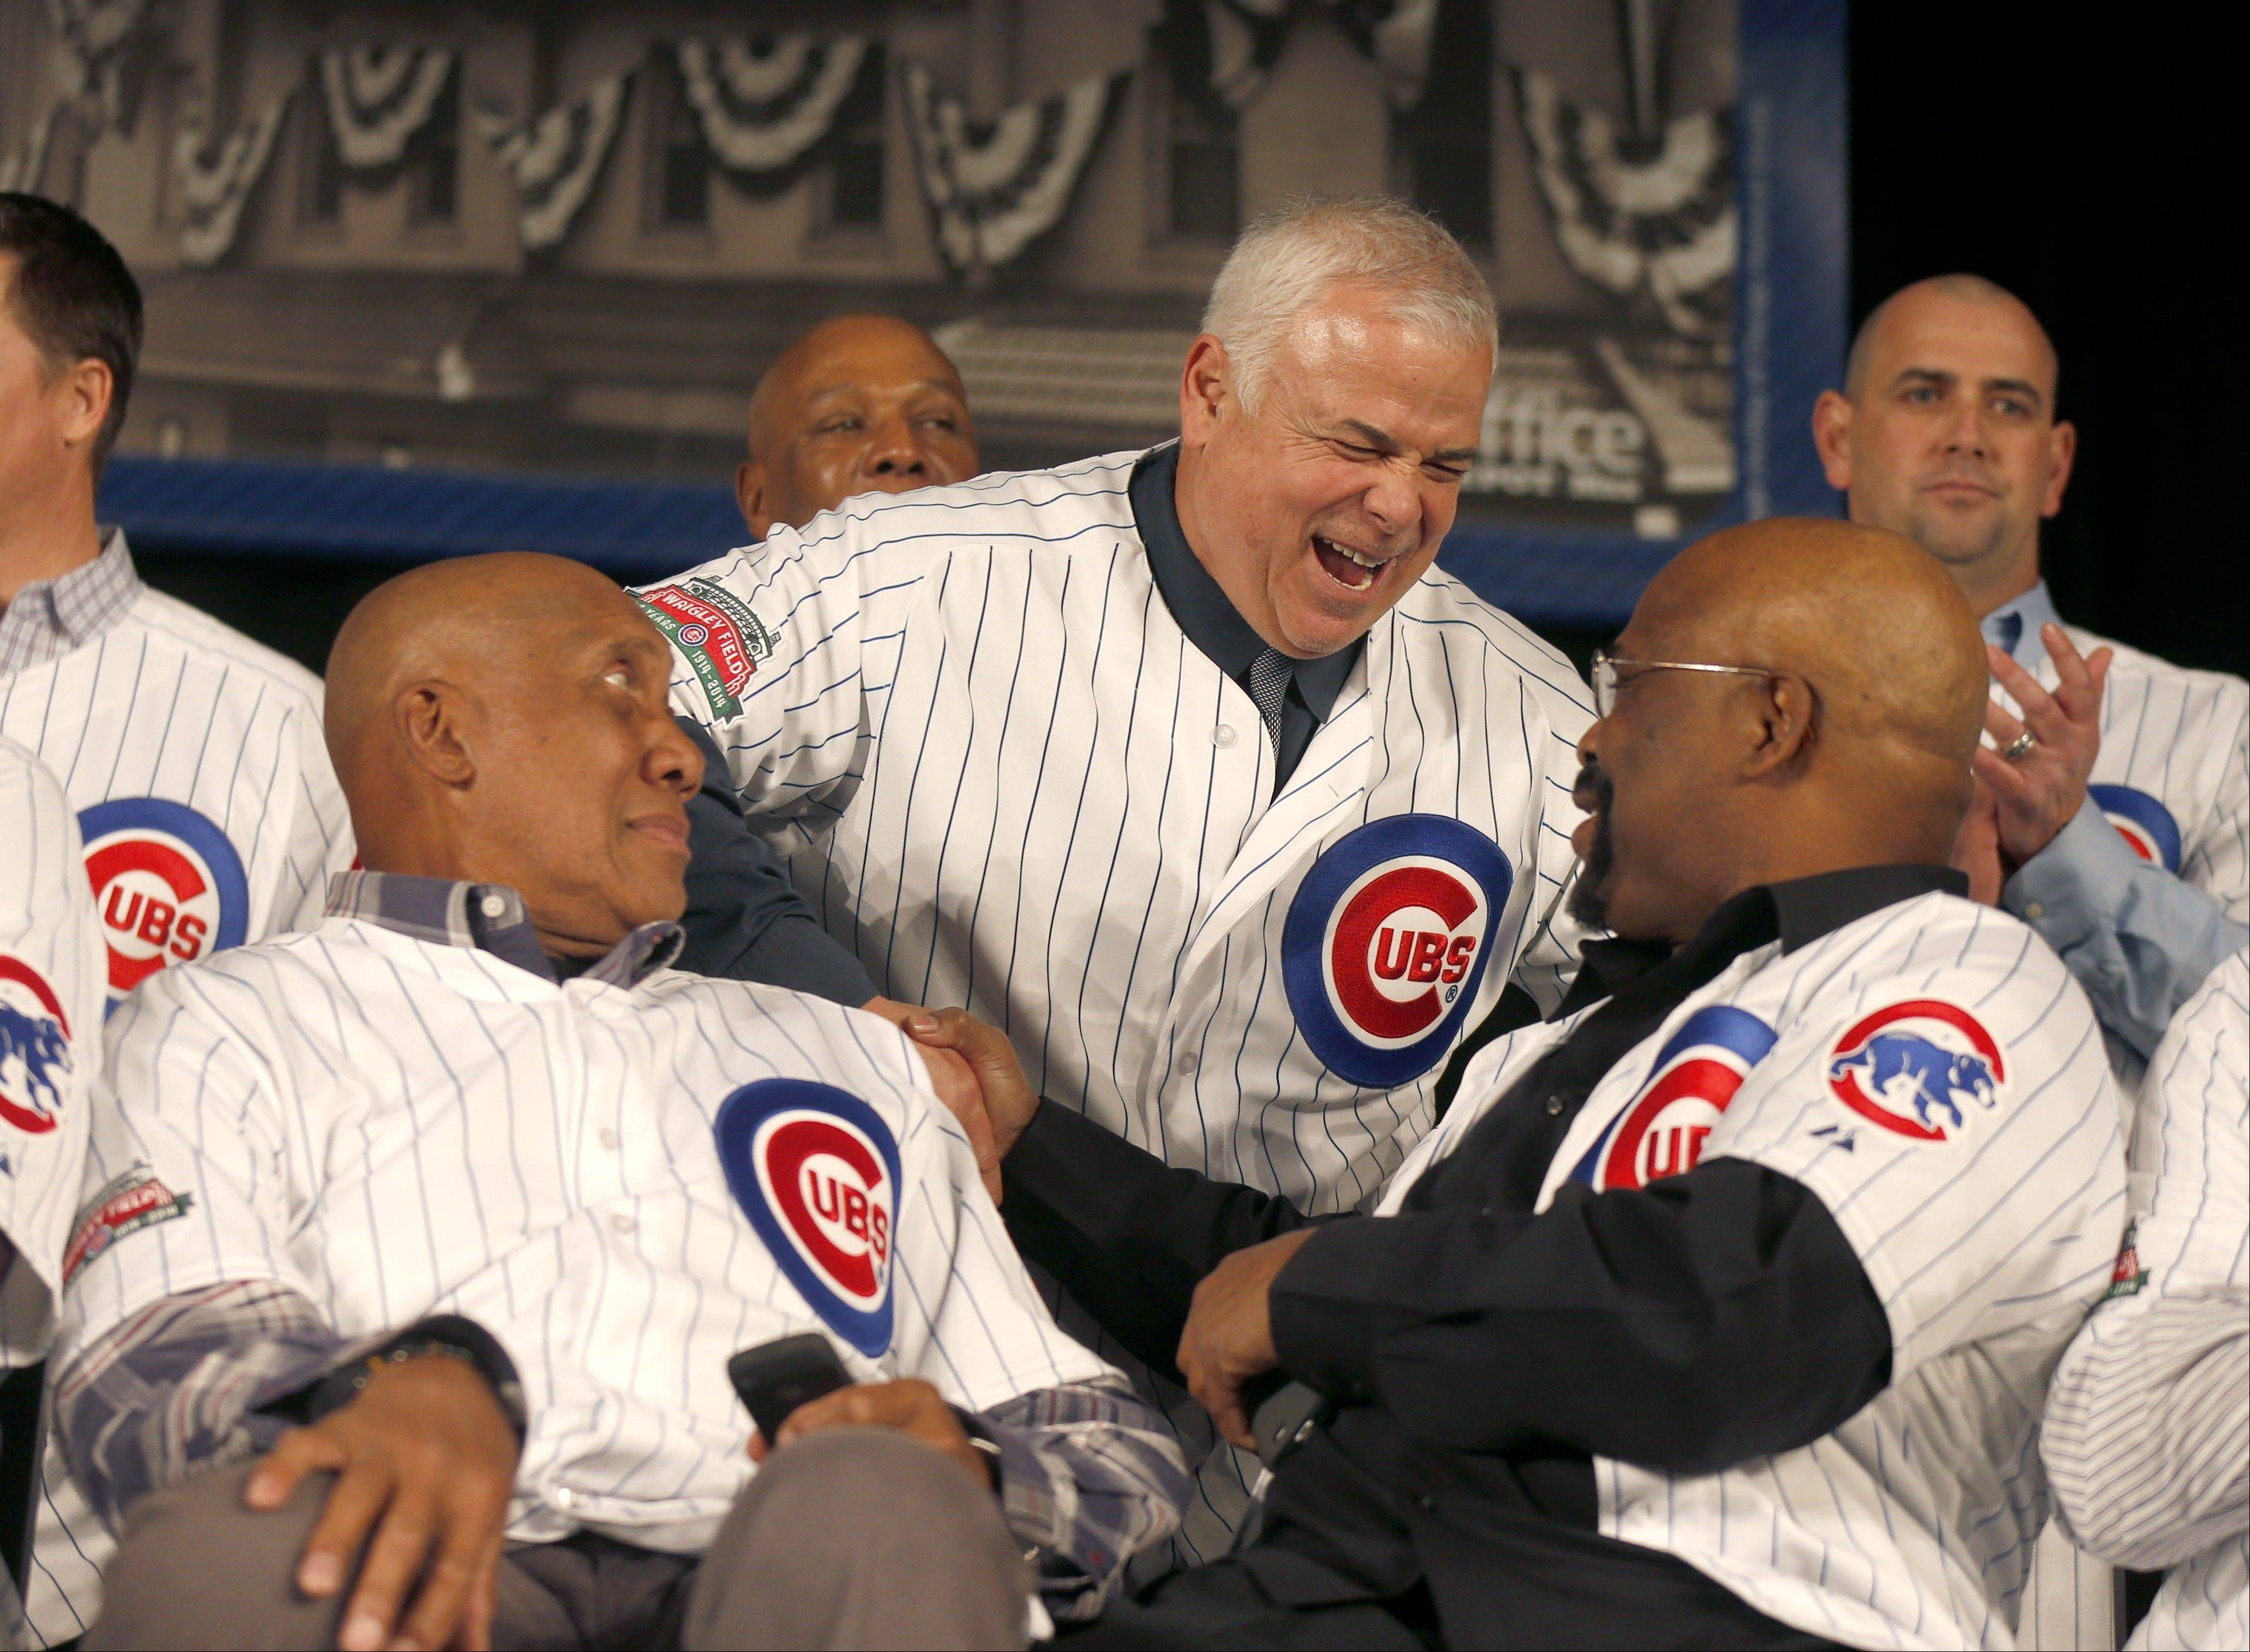 Cubs manager Rick Renteria, center, laughs with former Cub Bill Matlock, right, as Hall of Fame pitcher Ferguson Jenkins watches during the Cubs Convention Friday in Chicago.